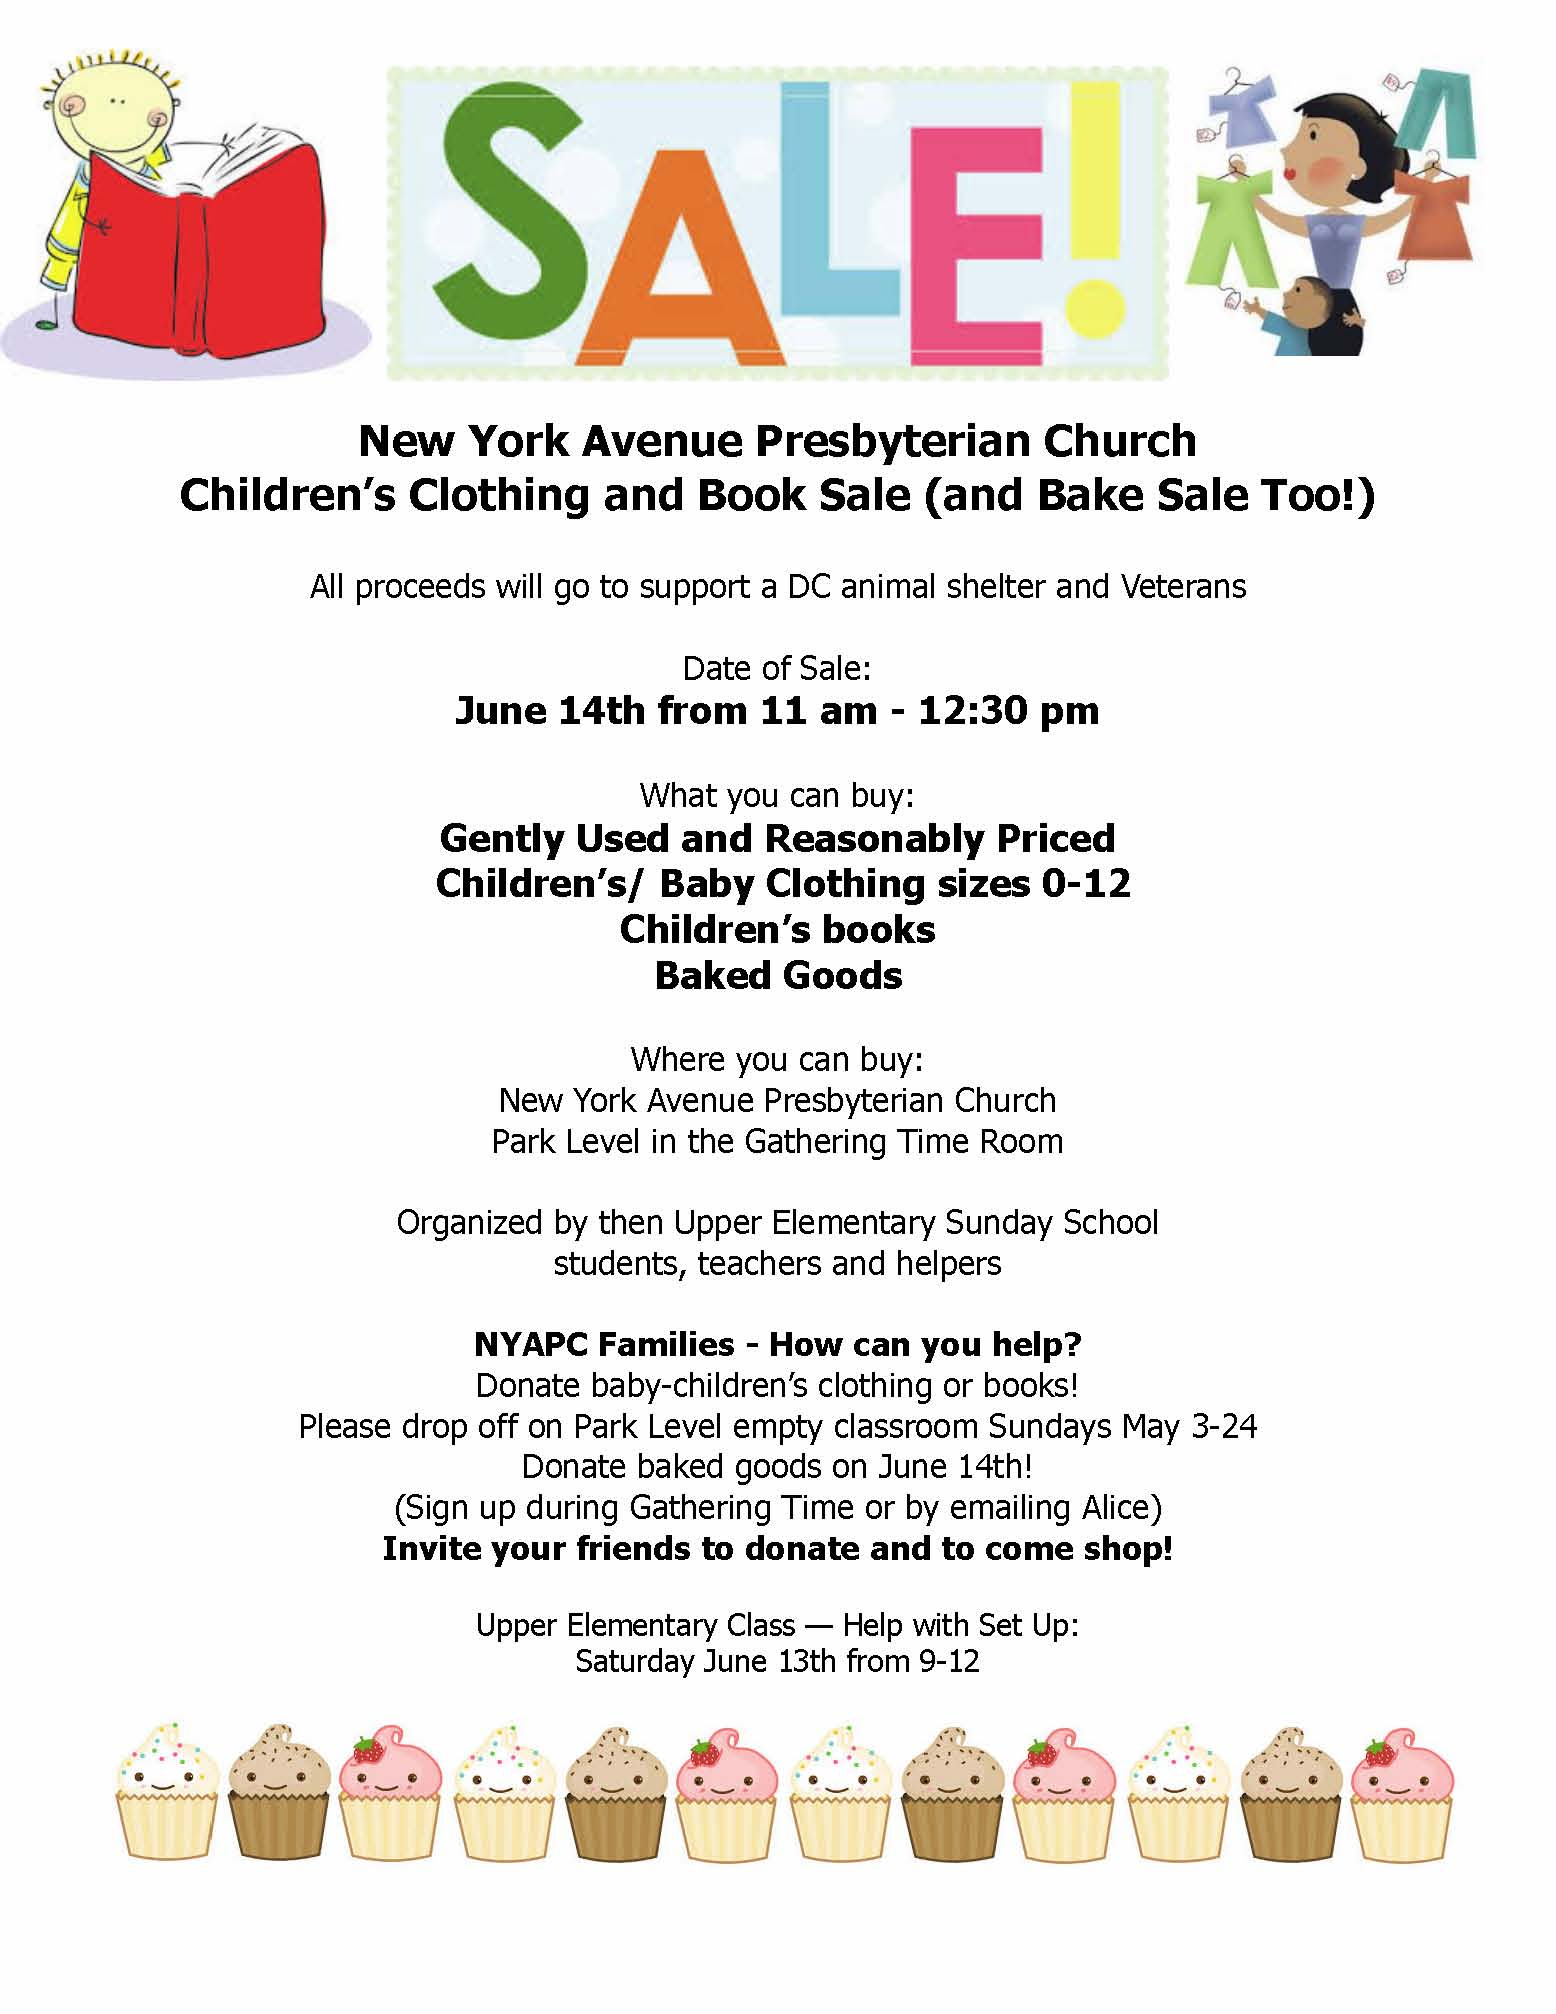 Children's Clothing and Book and Bake Sale June 14th – The New York